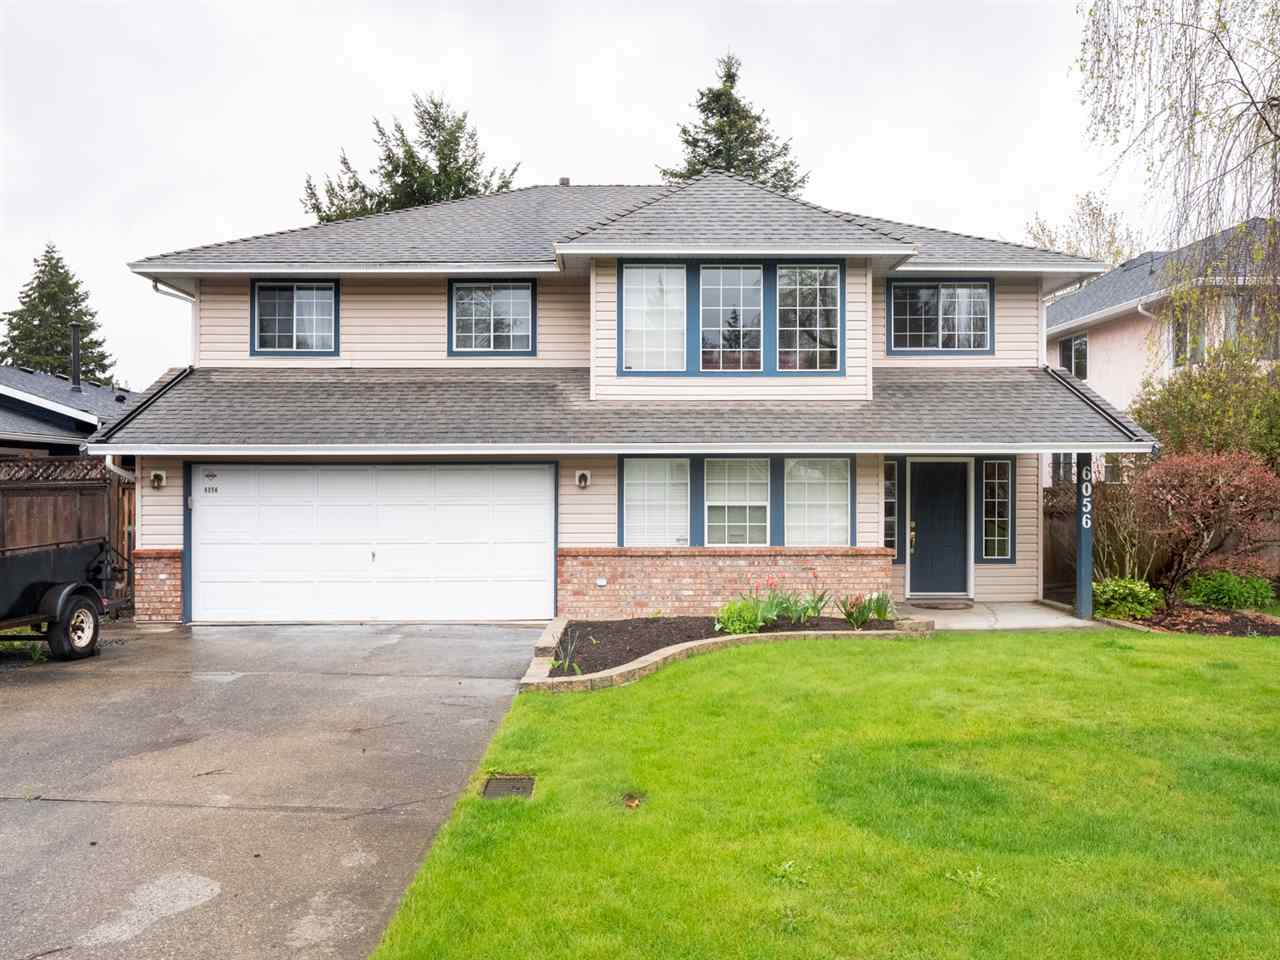 Removed: 6056 190b Street, Surrey, BC - Removed on 2020-02-14 05:24:19